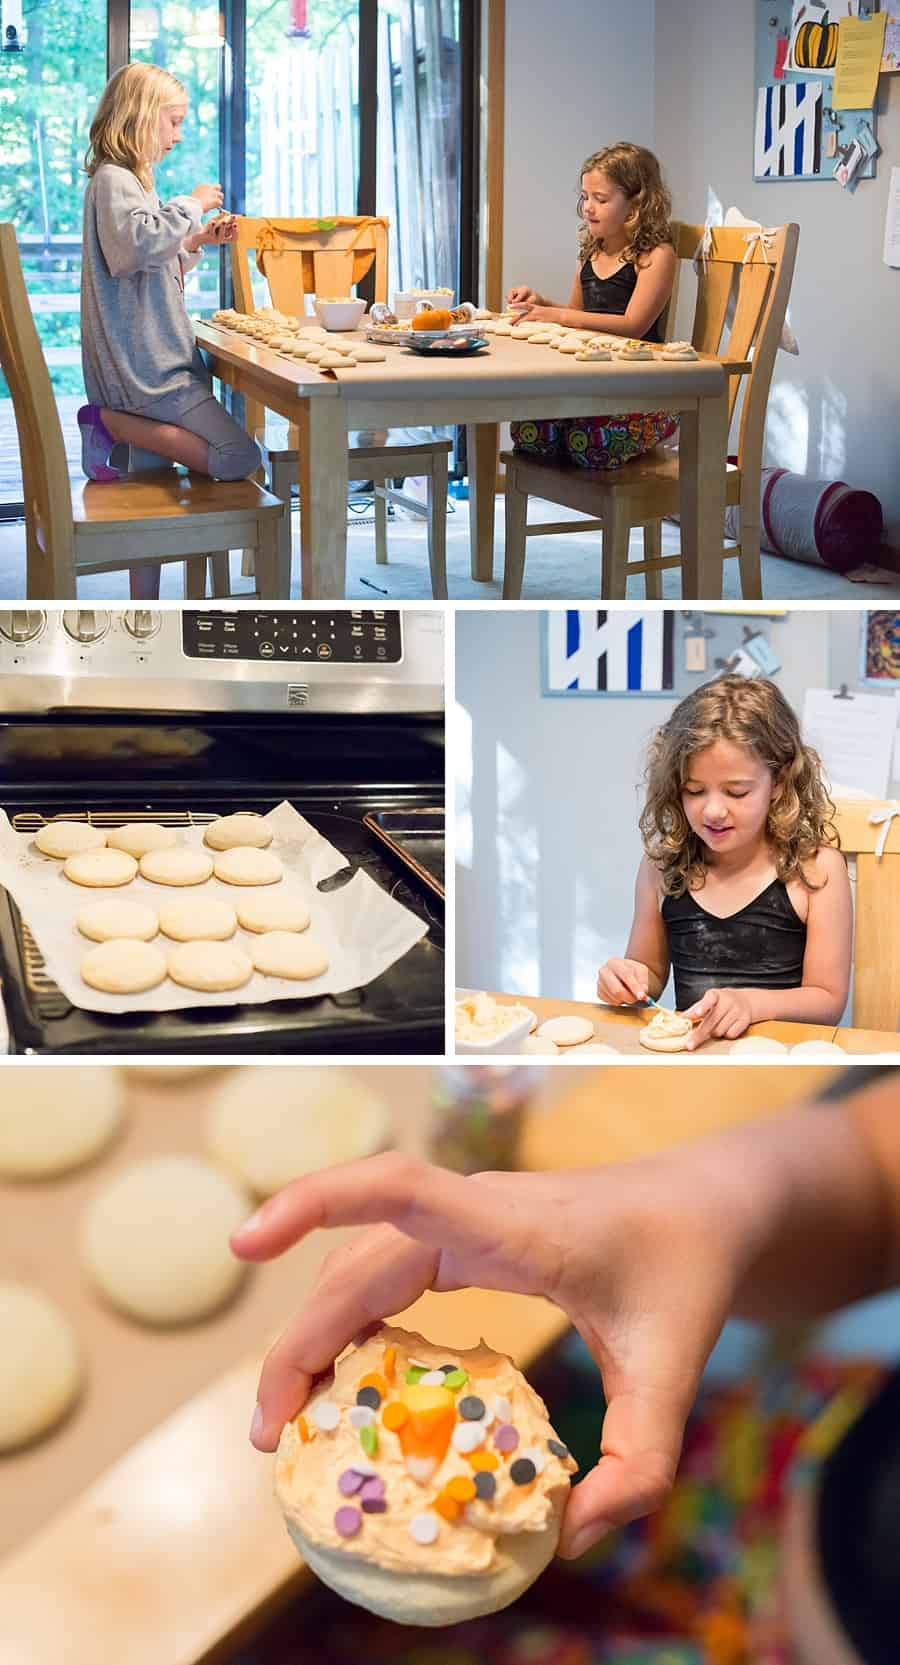 How to Cake Cookies for Halloween *This recipe tastes exactly like the grocery store birthday cake cookies. CRAZY. My kids love these. So good. What a fun fall family tradition!